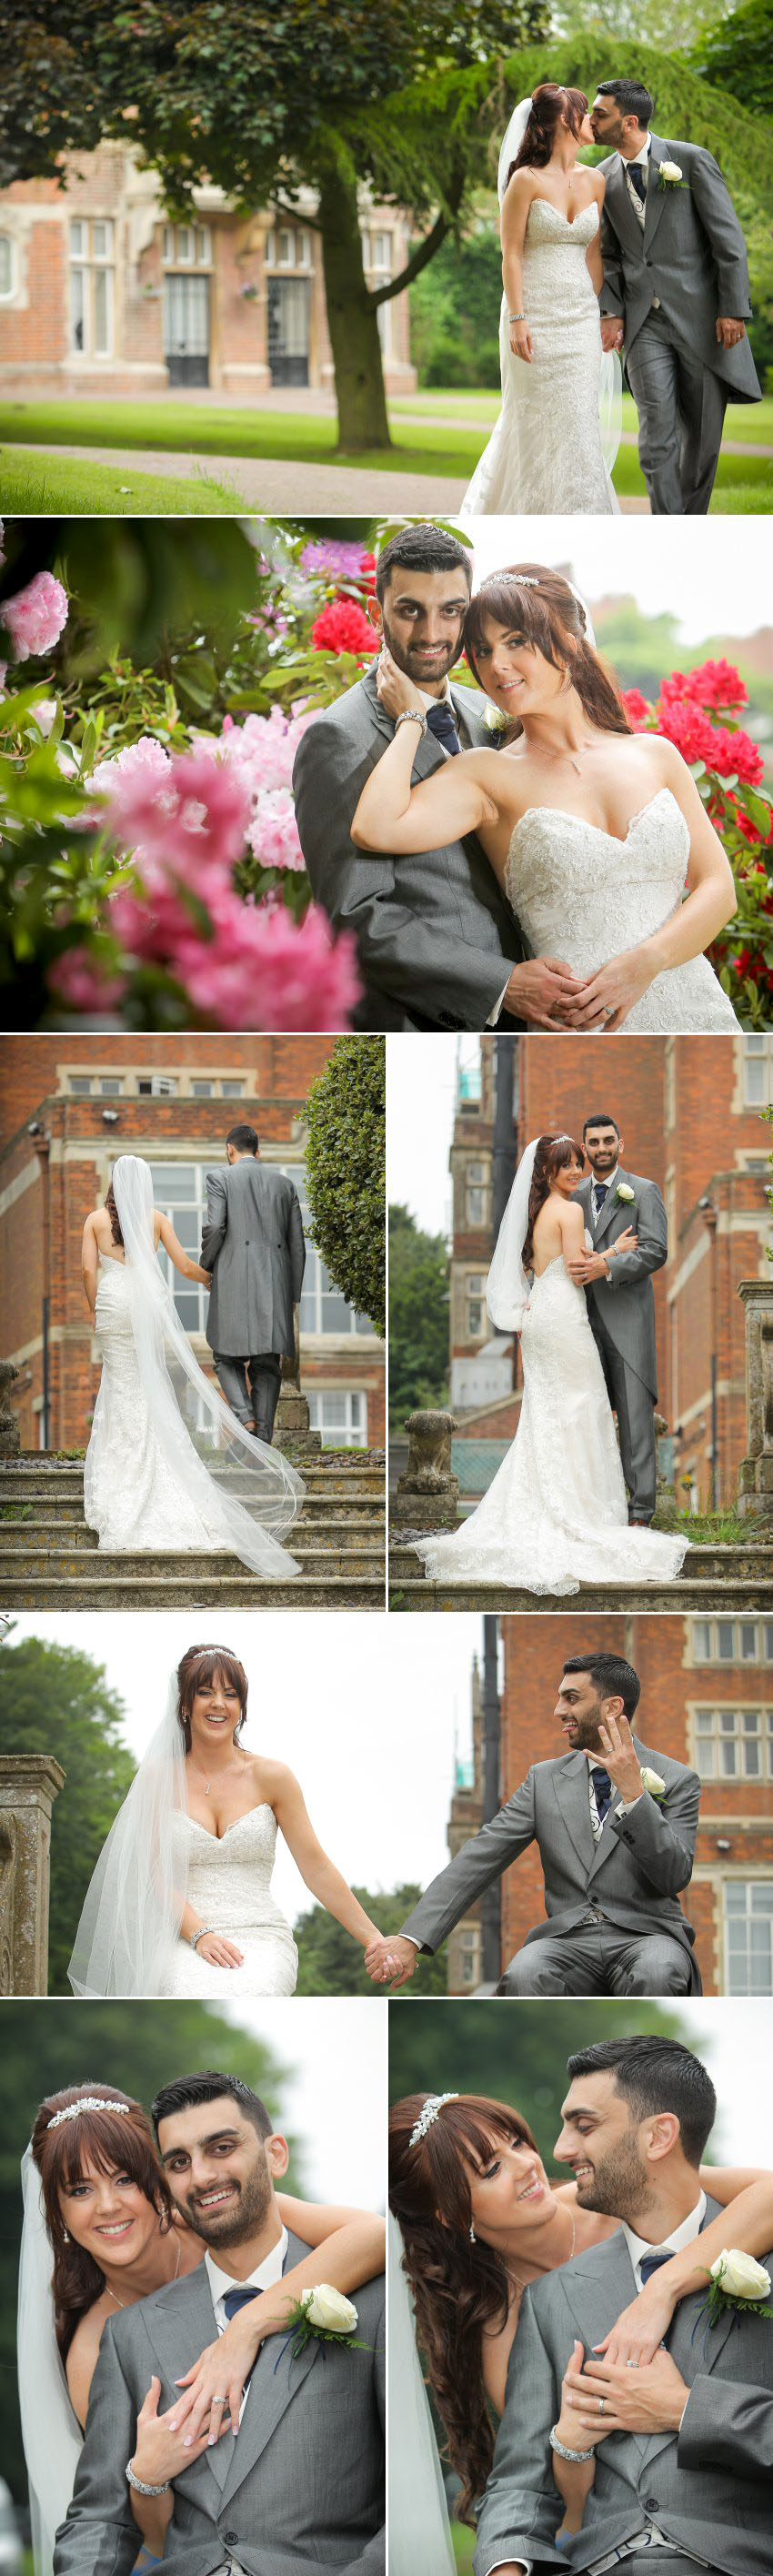 12 Wedding at Selsdon Estate, South Croydon